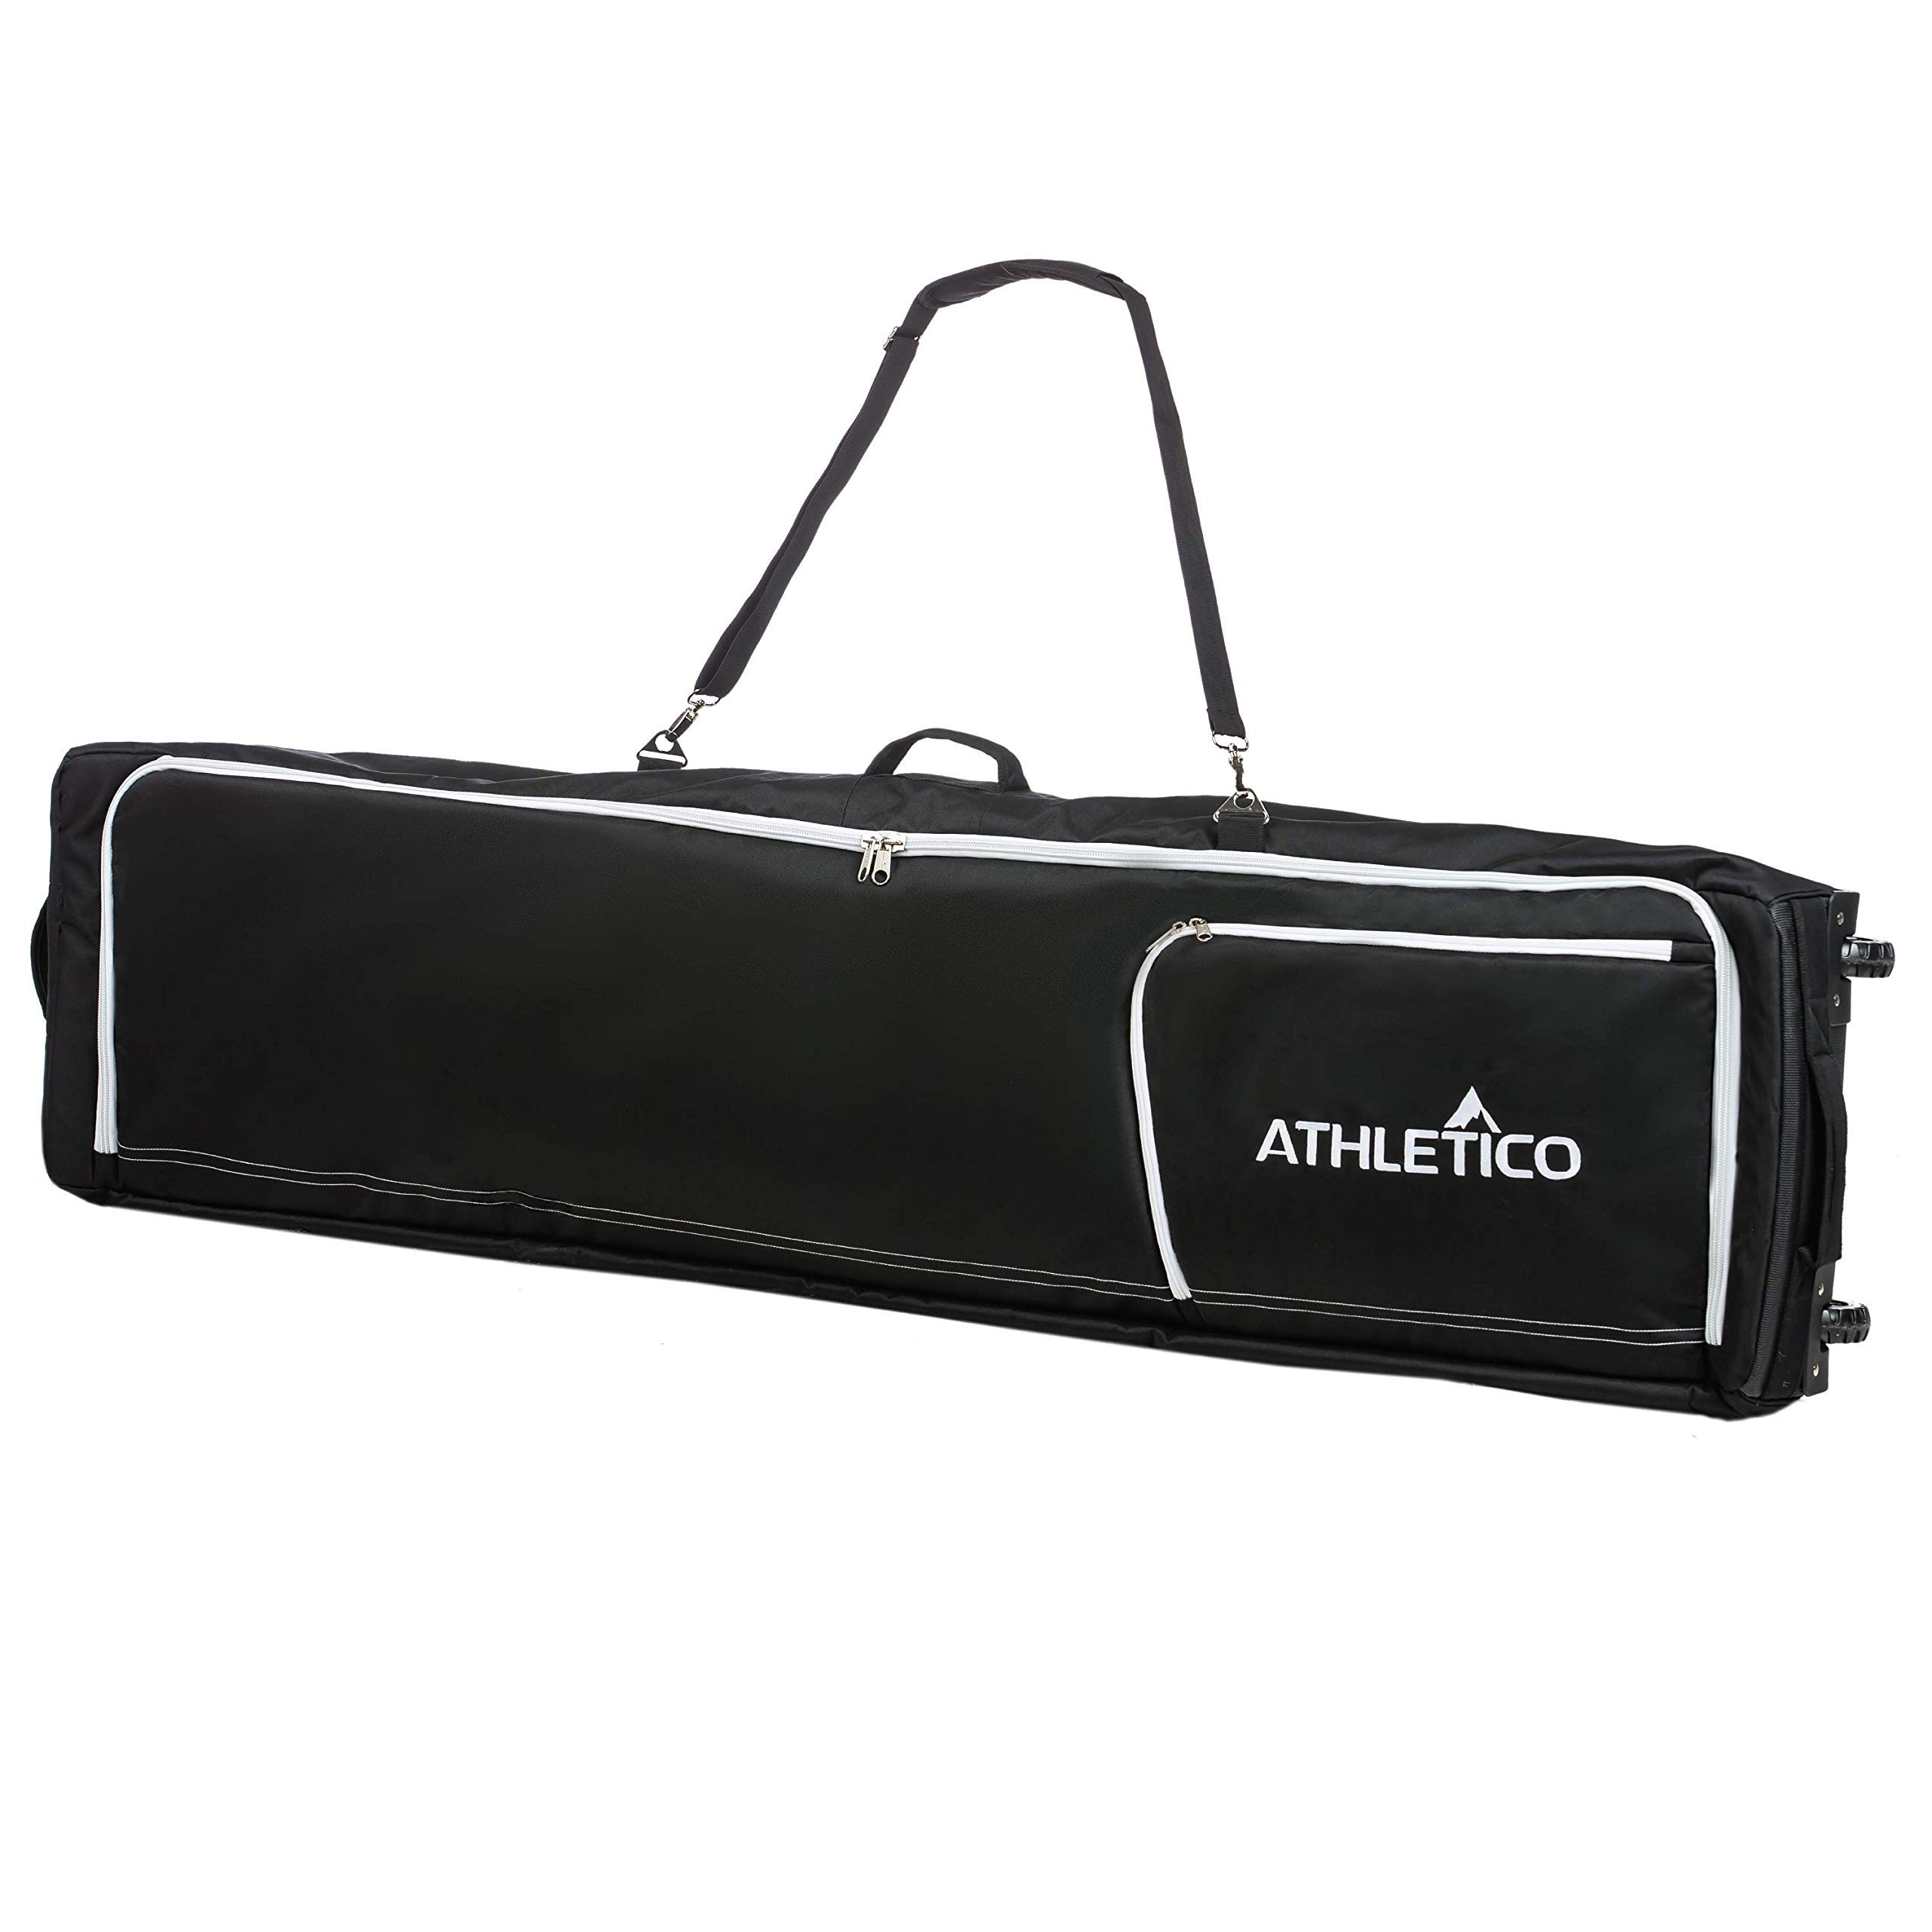 Athletico Conquest Padded Snowboard Bag with Wheels - Travel Bag for Single Snowboard and Snowboard Boots (Black, 157 cm)